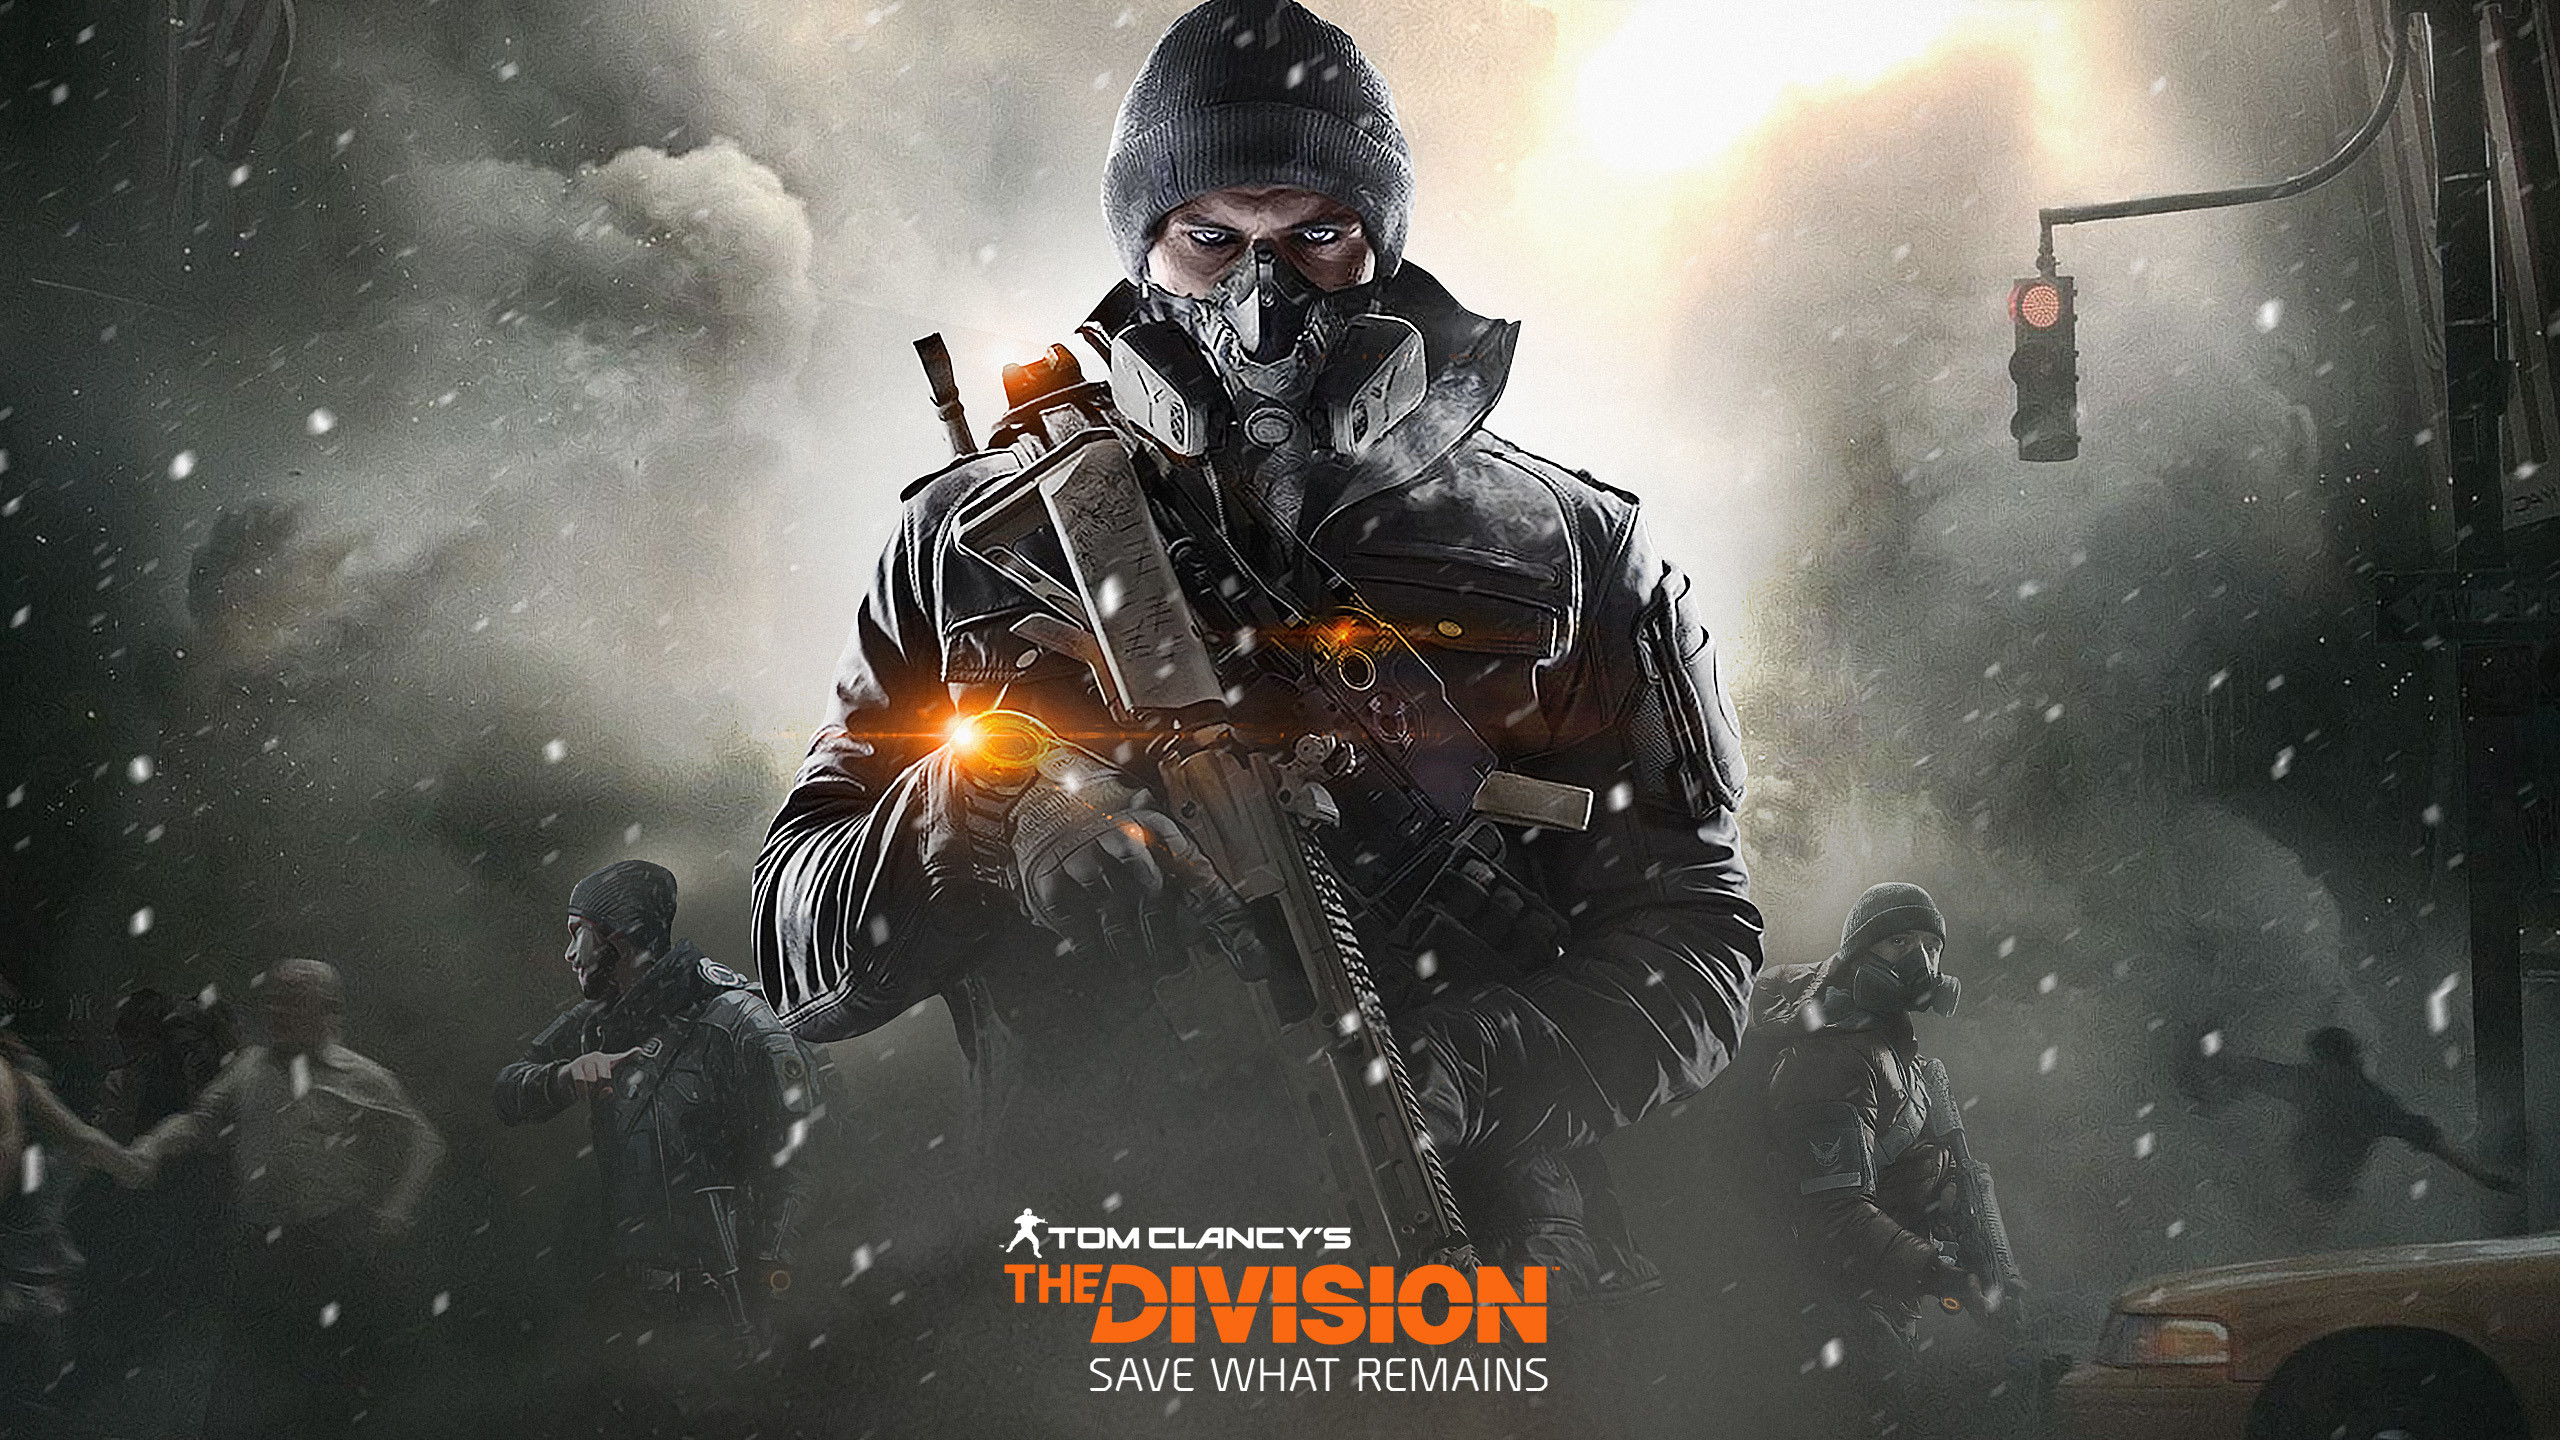 The Division Wallpaper 2560×1440